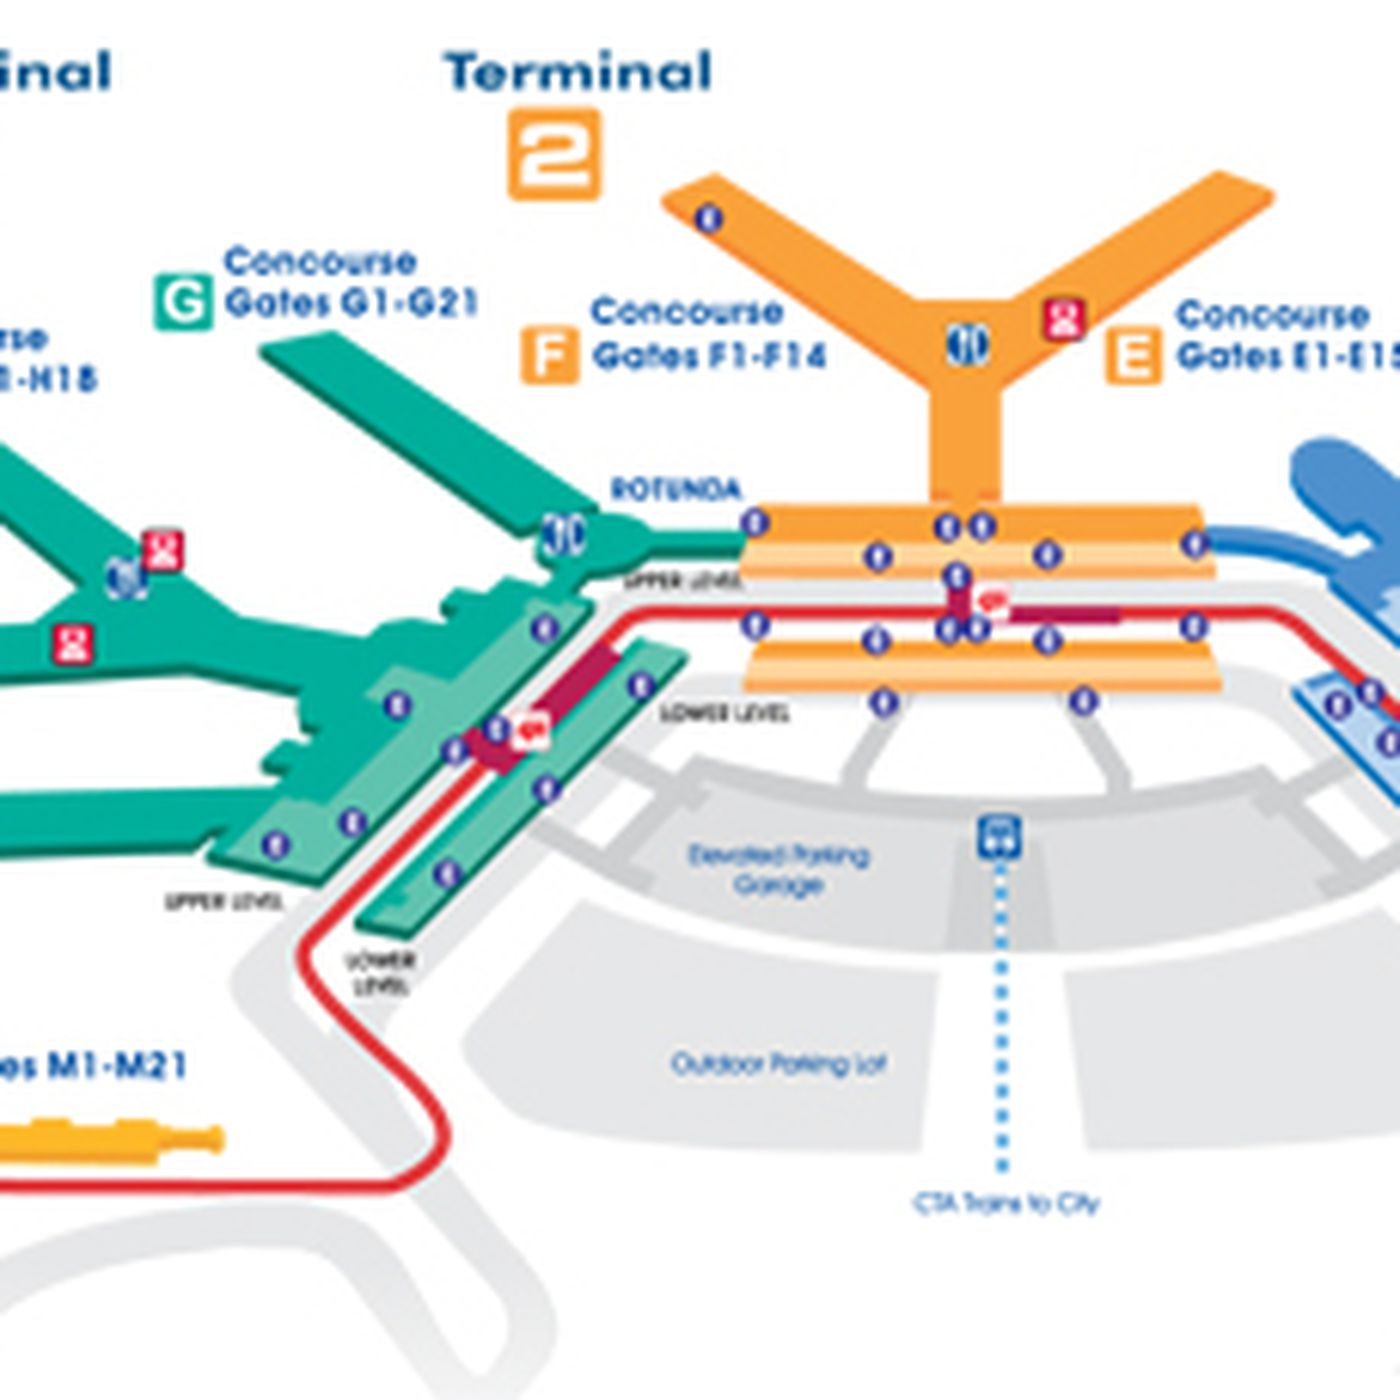 Where to Eat at O'Hare International Airport (ORD) - Eater ... on chicago o'hare flight map, ord airline terminal map, ord terminal 5 map, ord terminal 3 map, ord airport map, ord gate map, chicago airport map, flight ord to berlin map, chicago ship map,